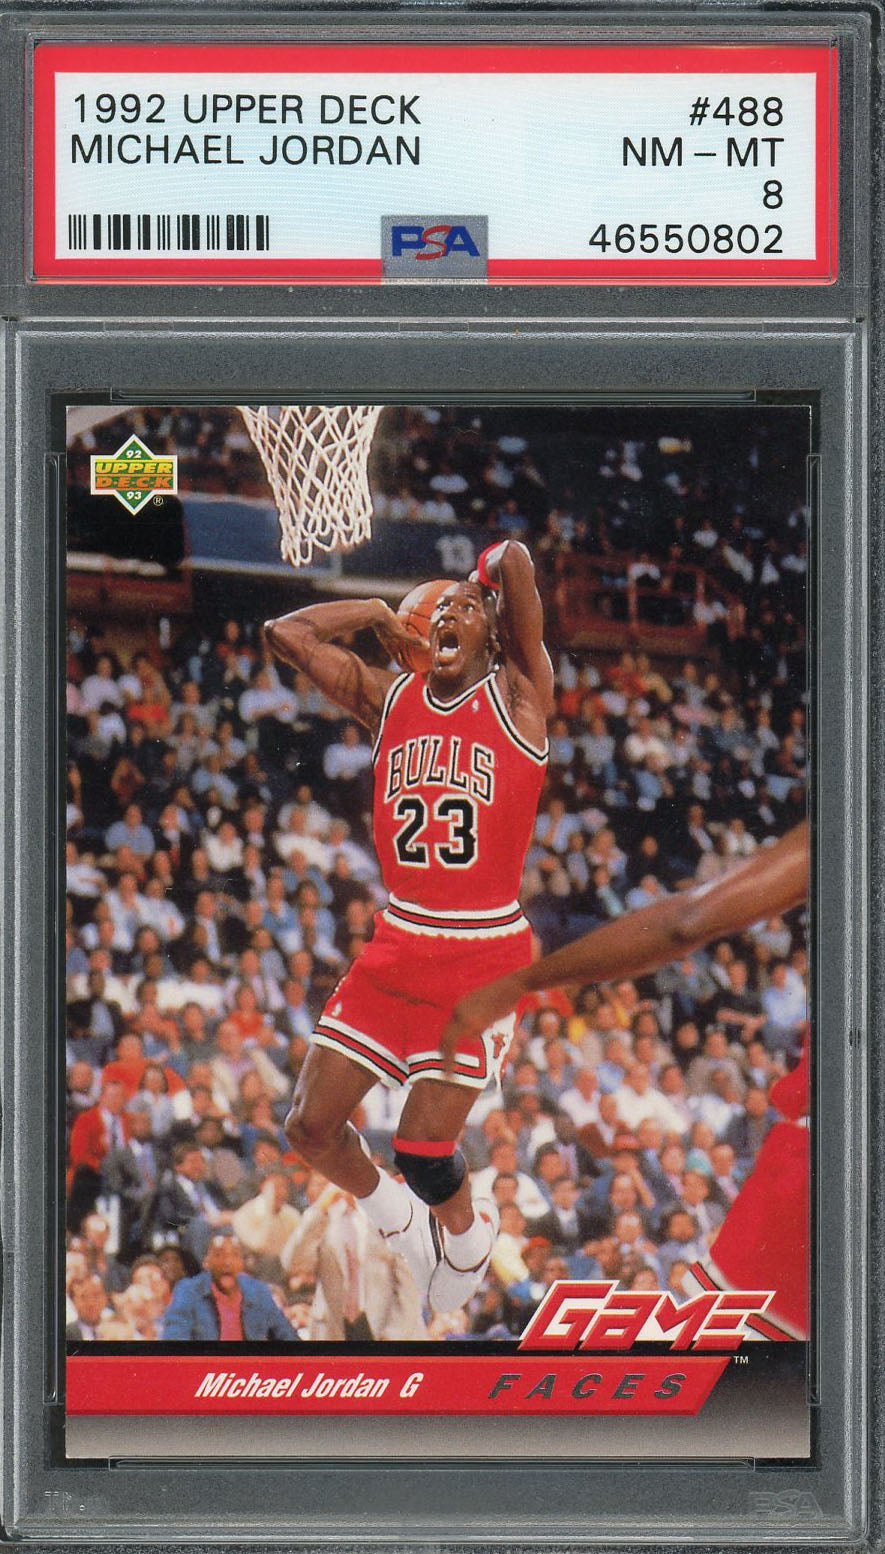 Michael Jordan Chicago Bulls 1992 Upper Deck Basketball Card #488 Graded PSA 8-Powers Sports Memorabilia